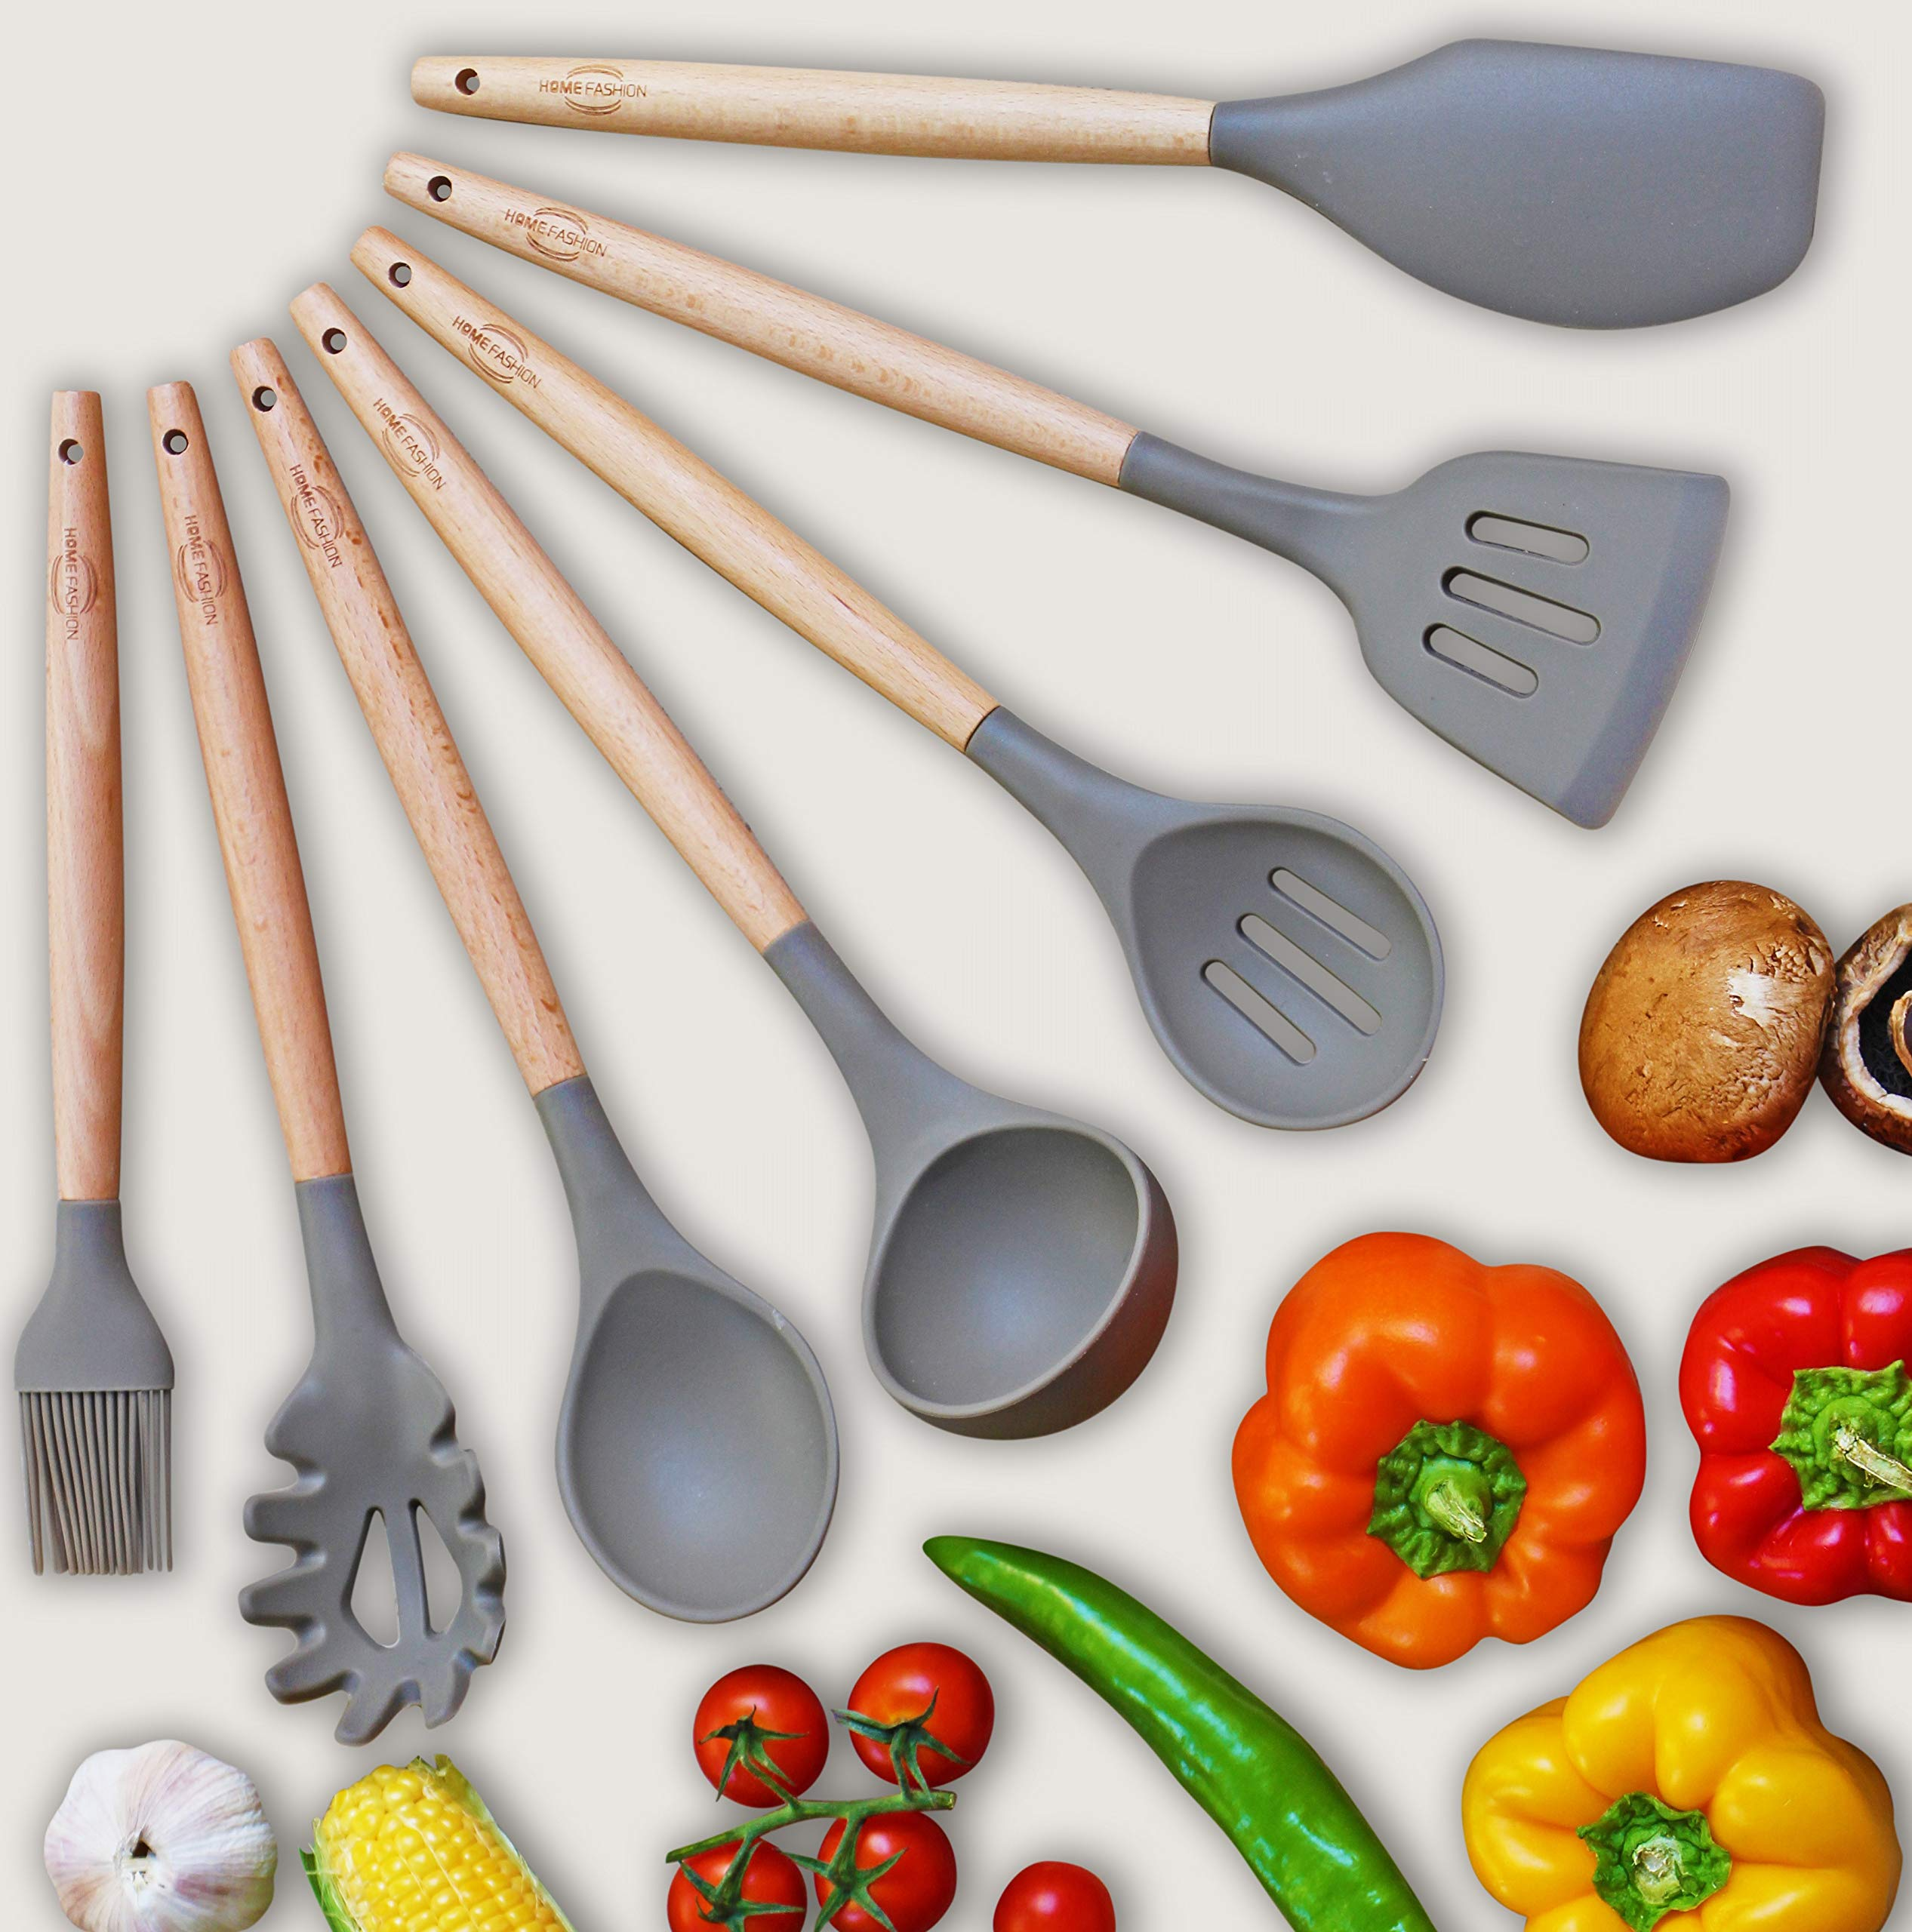 Kitchen Utensil Set - 7 Best Kitchen Utensils - Nonstick Cooking Spatulas - Silicone & Wood - For Pots & Pans - Spoon & Slotted Spoon, Ladle, Spatula, Pasta Server, Slotted Turner, Oil Brush + Gift